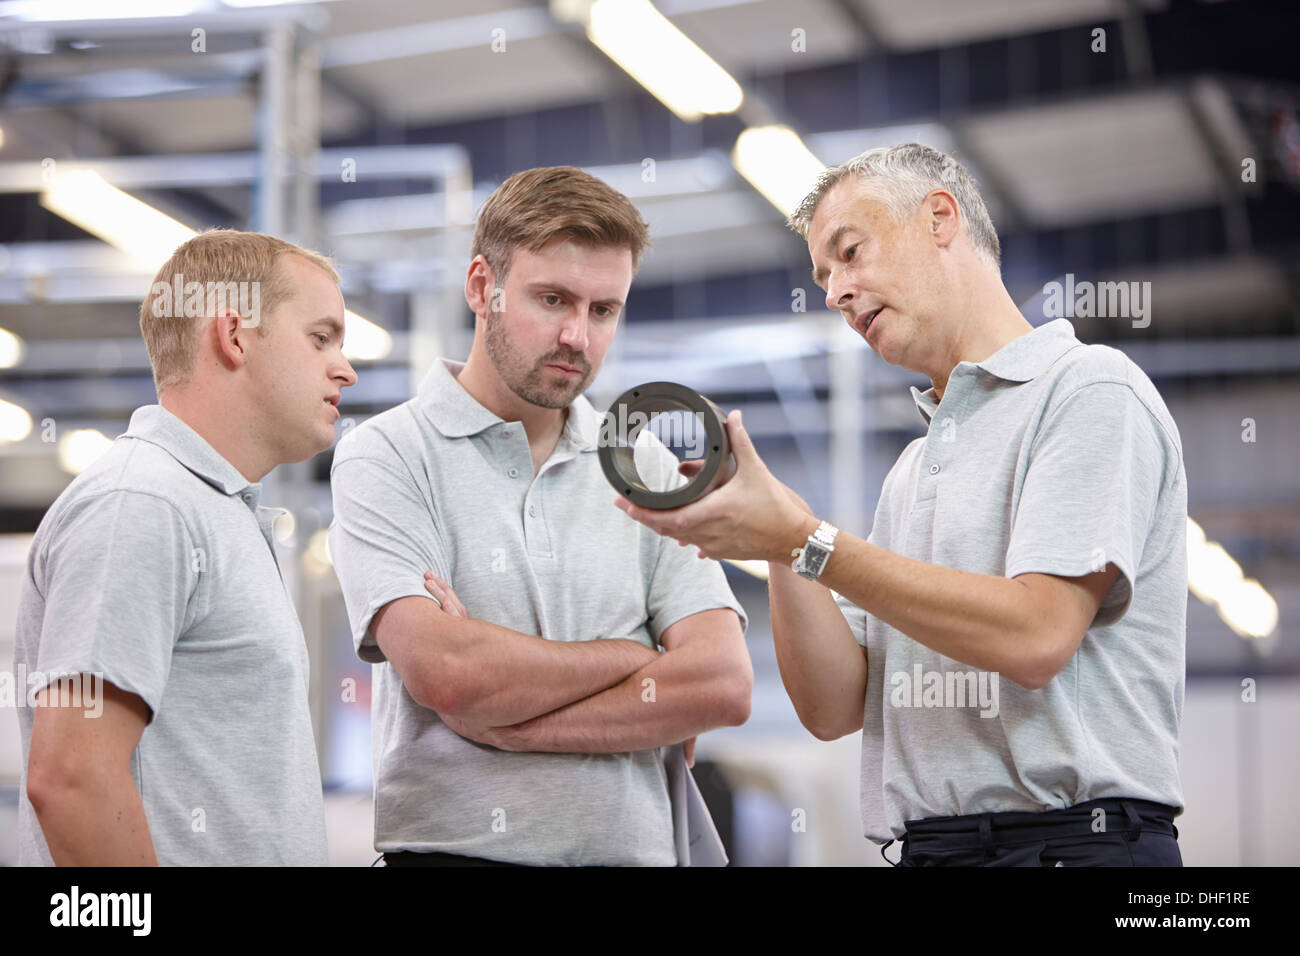 Manager discussing component in engineering factory - Stock Image